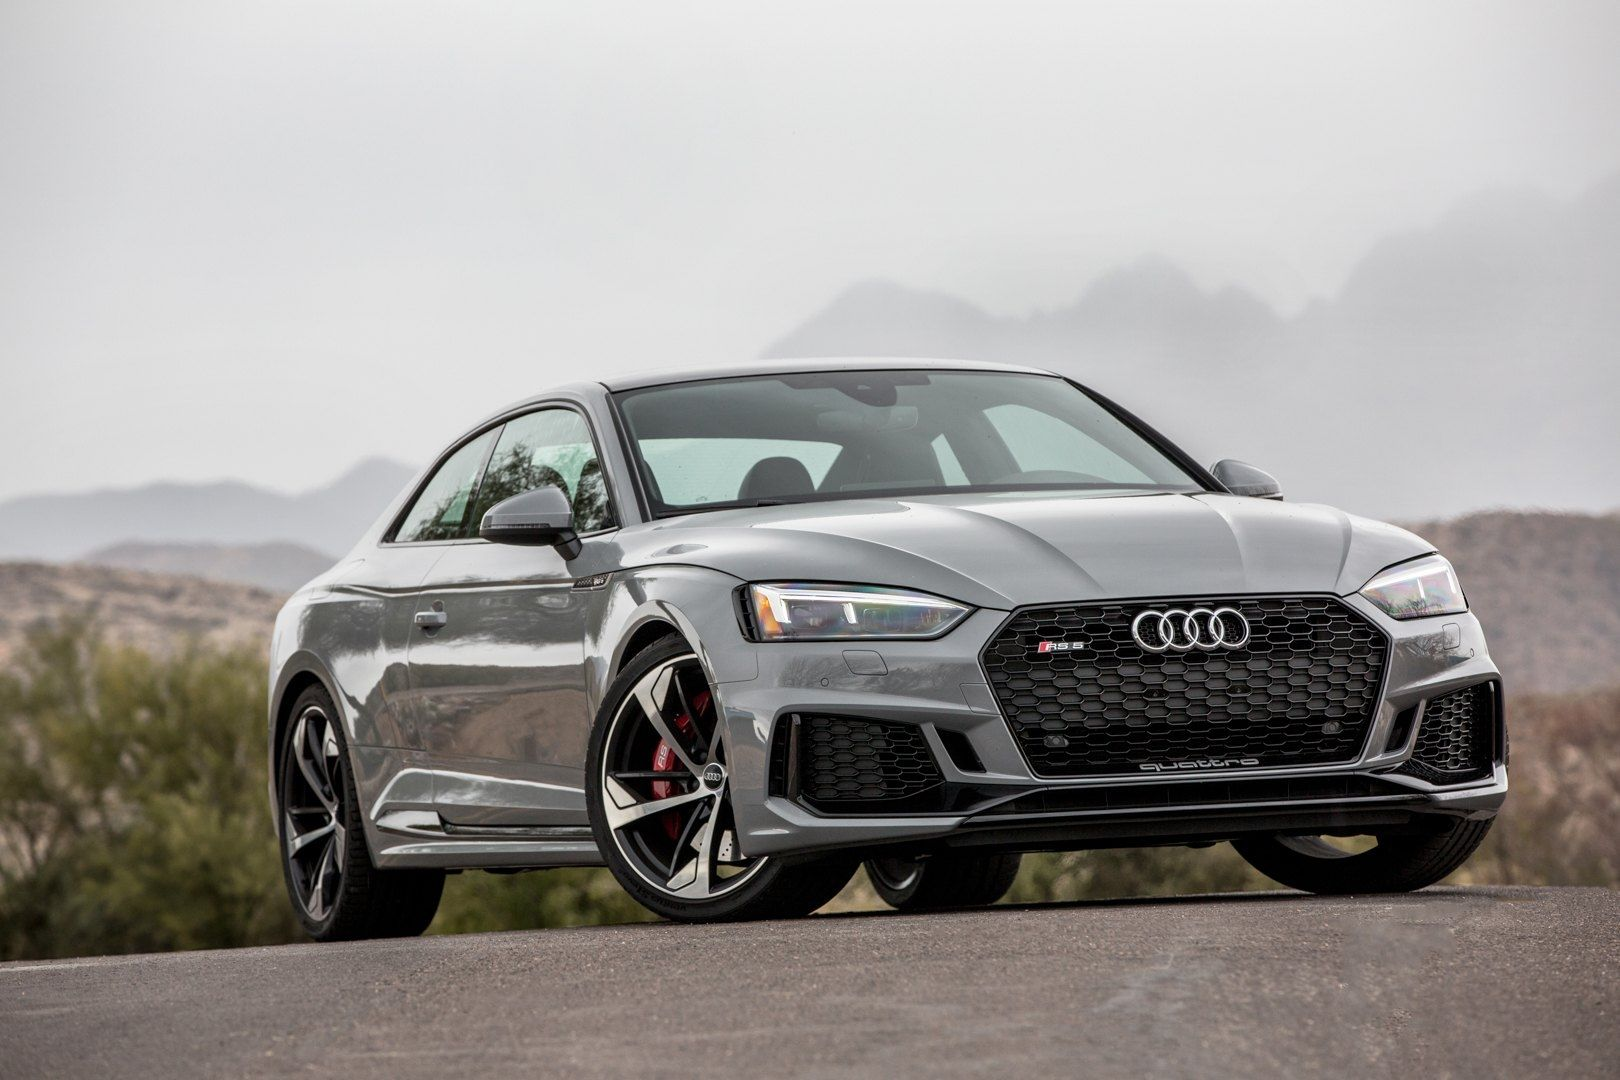 Top 2020 Audi Rs5 Coupe Rumors Audi sports car, Cool